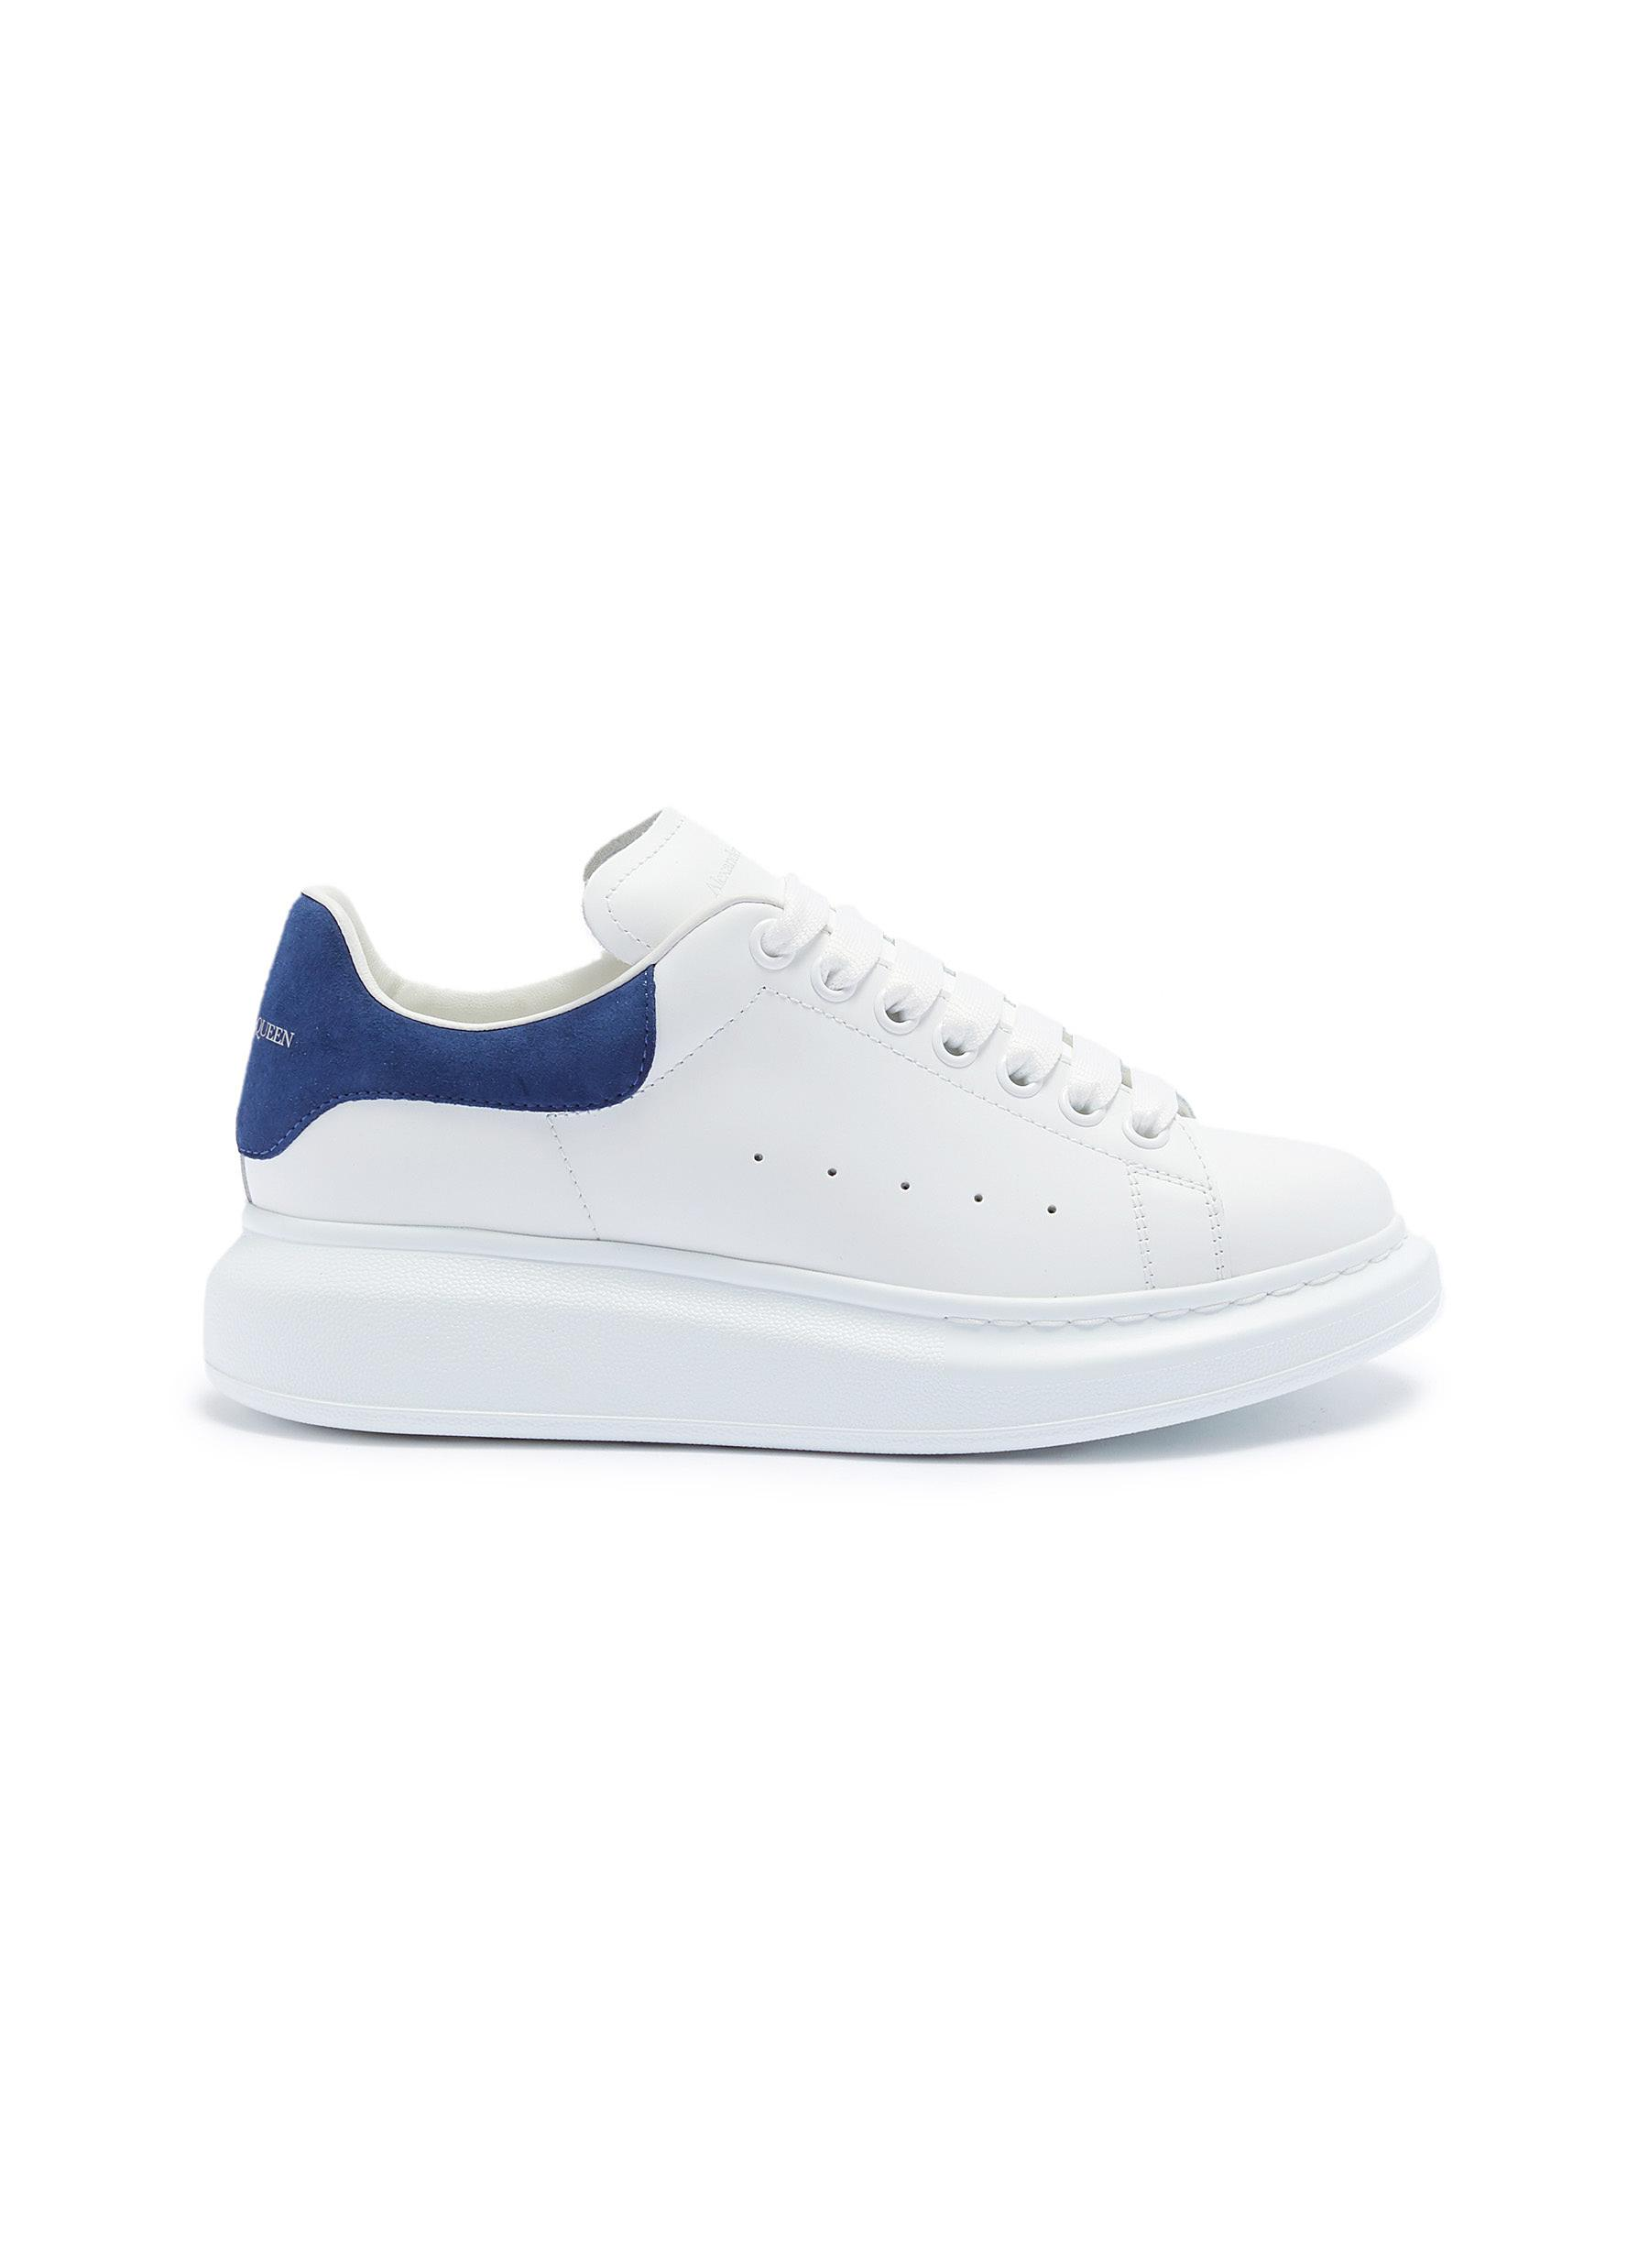 Oversized Sneaker in leather with suede collar by Alexander Mcqueen